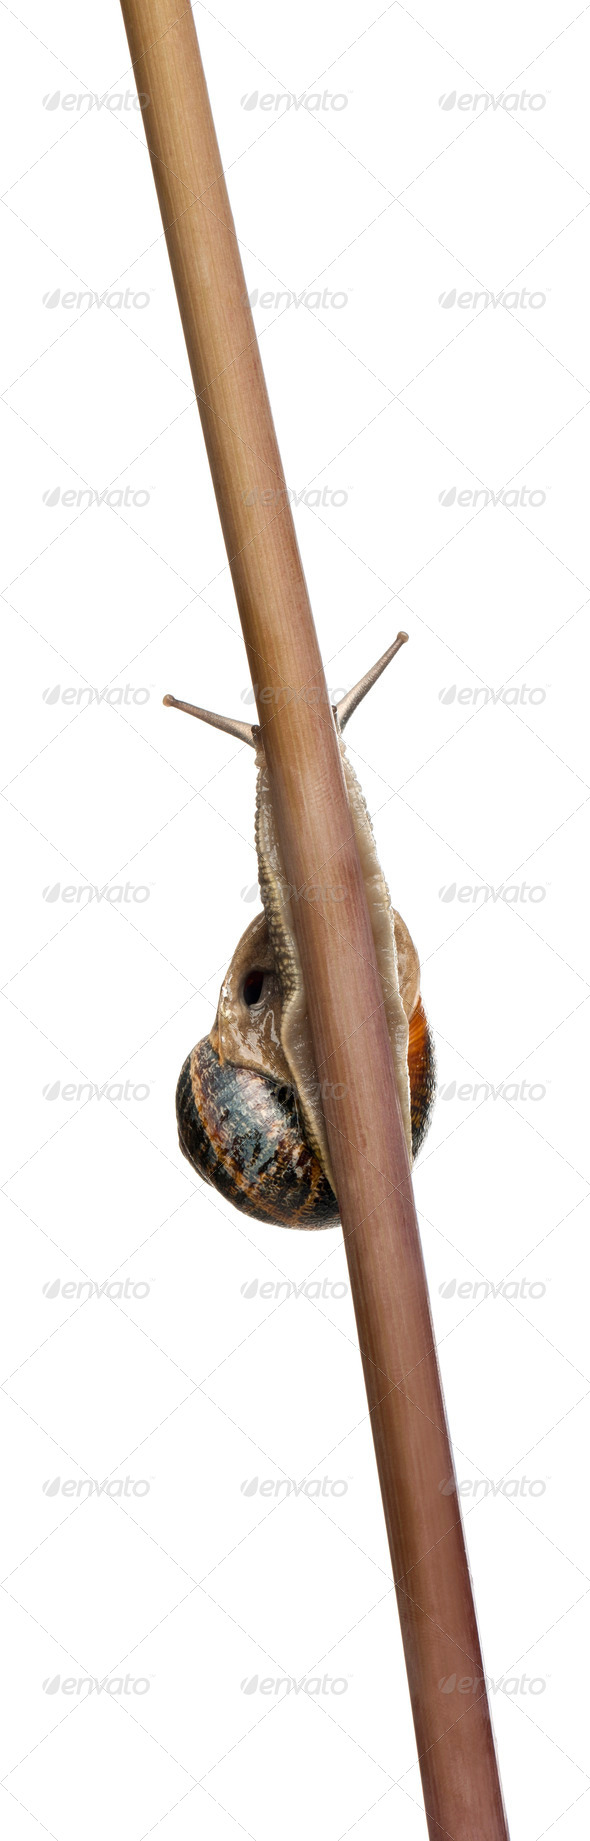 Garden Snail, Helix aspersa, climbing stem in front of white background - Stock Photo - Images